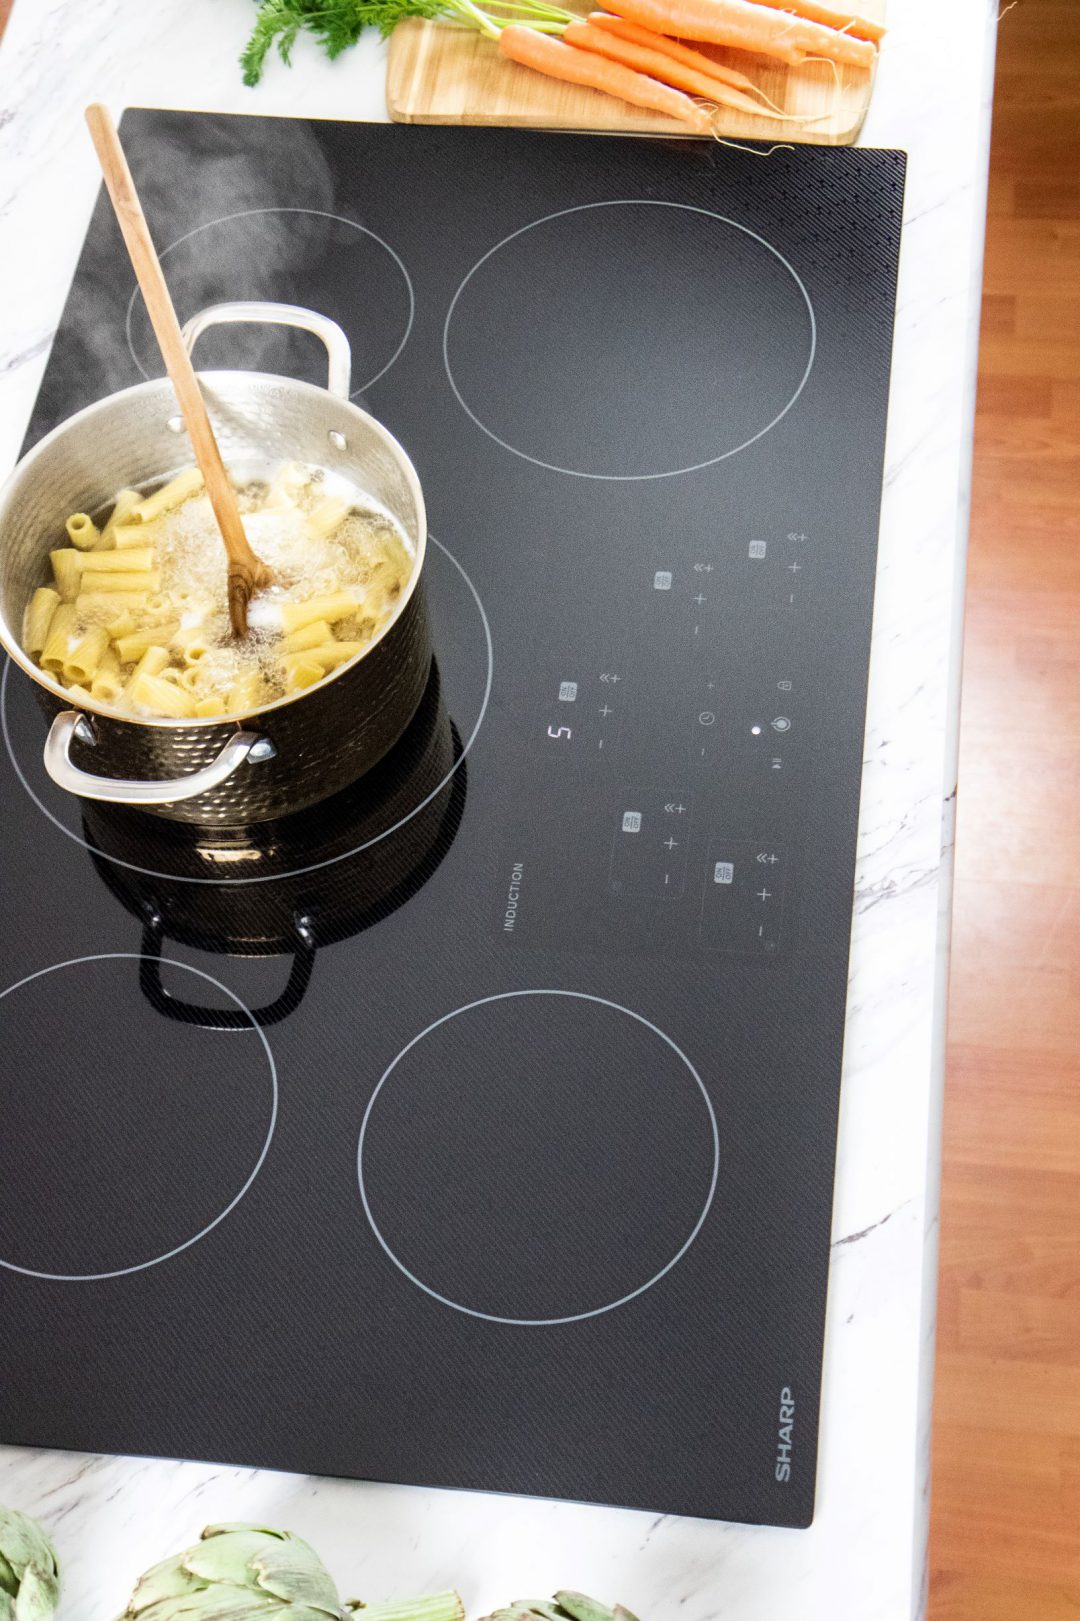 Pasta cooking in a 3pot on an induction cooktop.